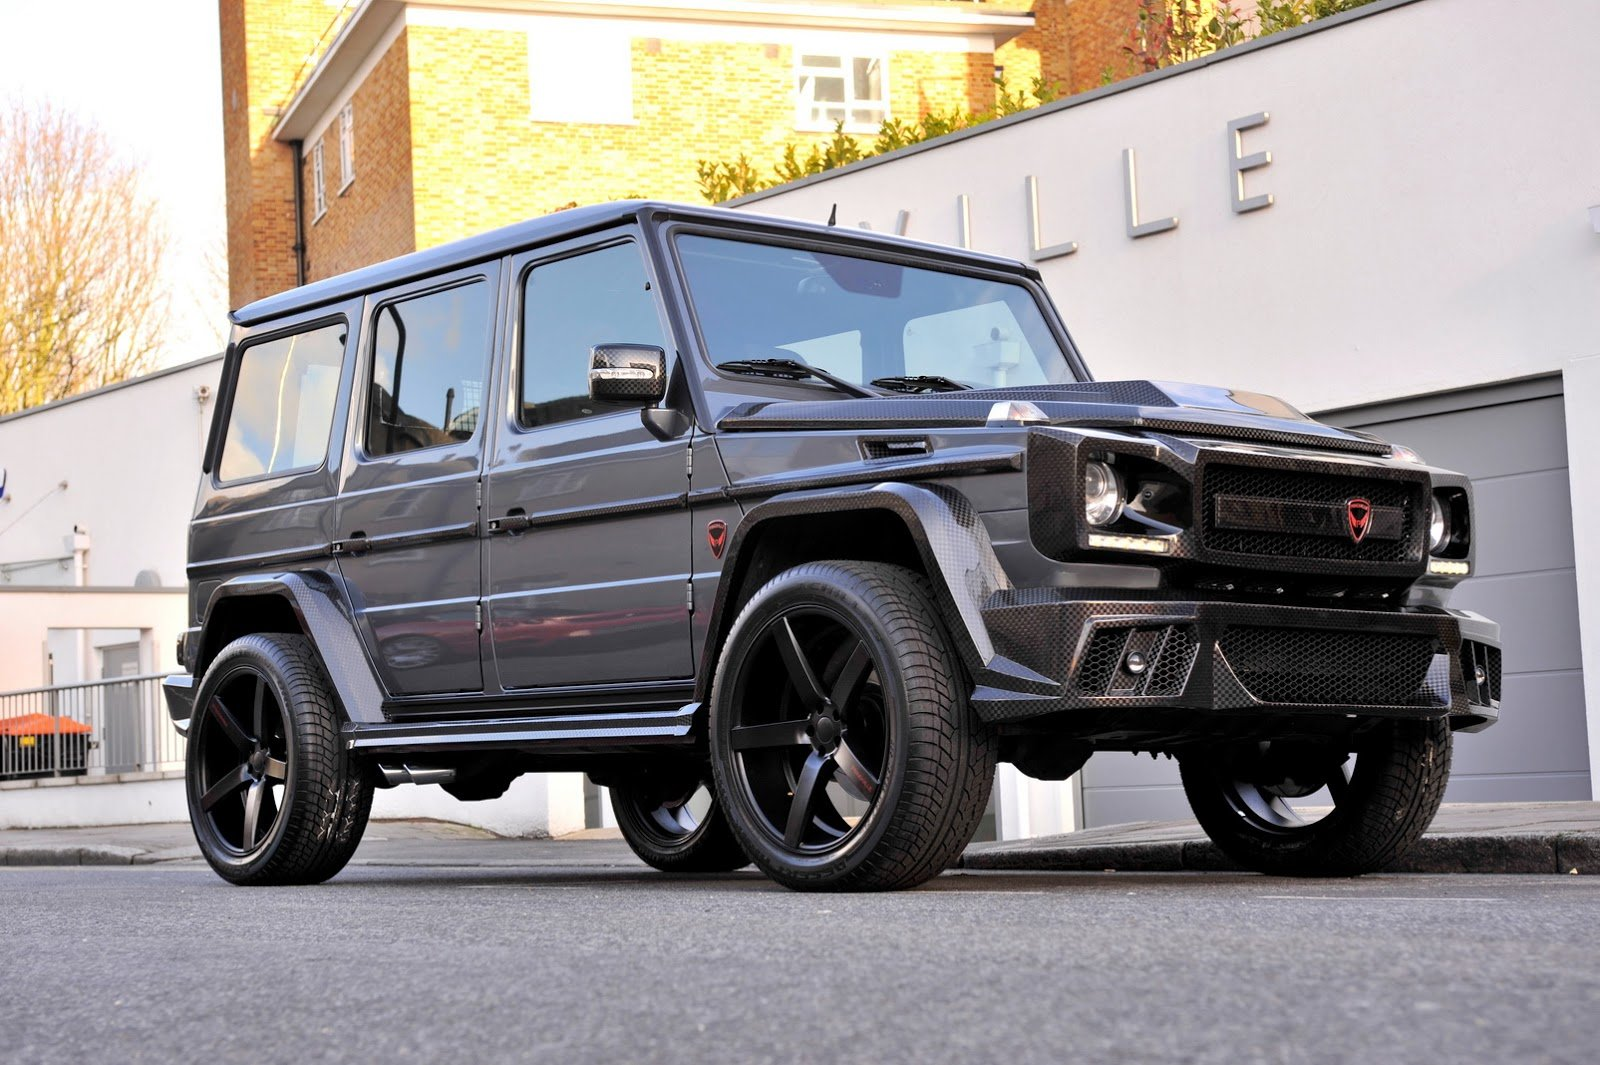 prindiville mercedes g63 amg cars 4x4 tuning wallpaper 1600x1065 680648 wallpaperup. Black Bedroom Furniture Sets. Home Design Ideas